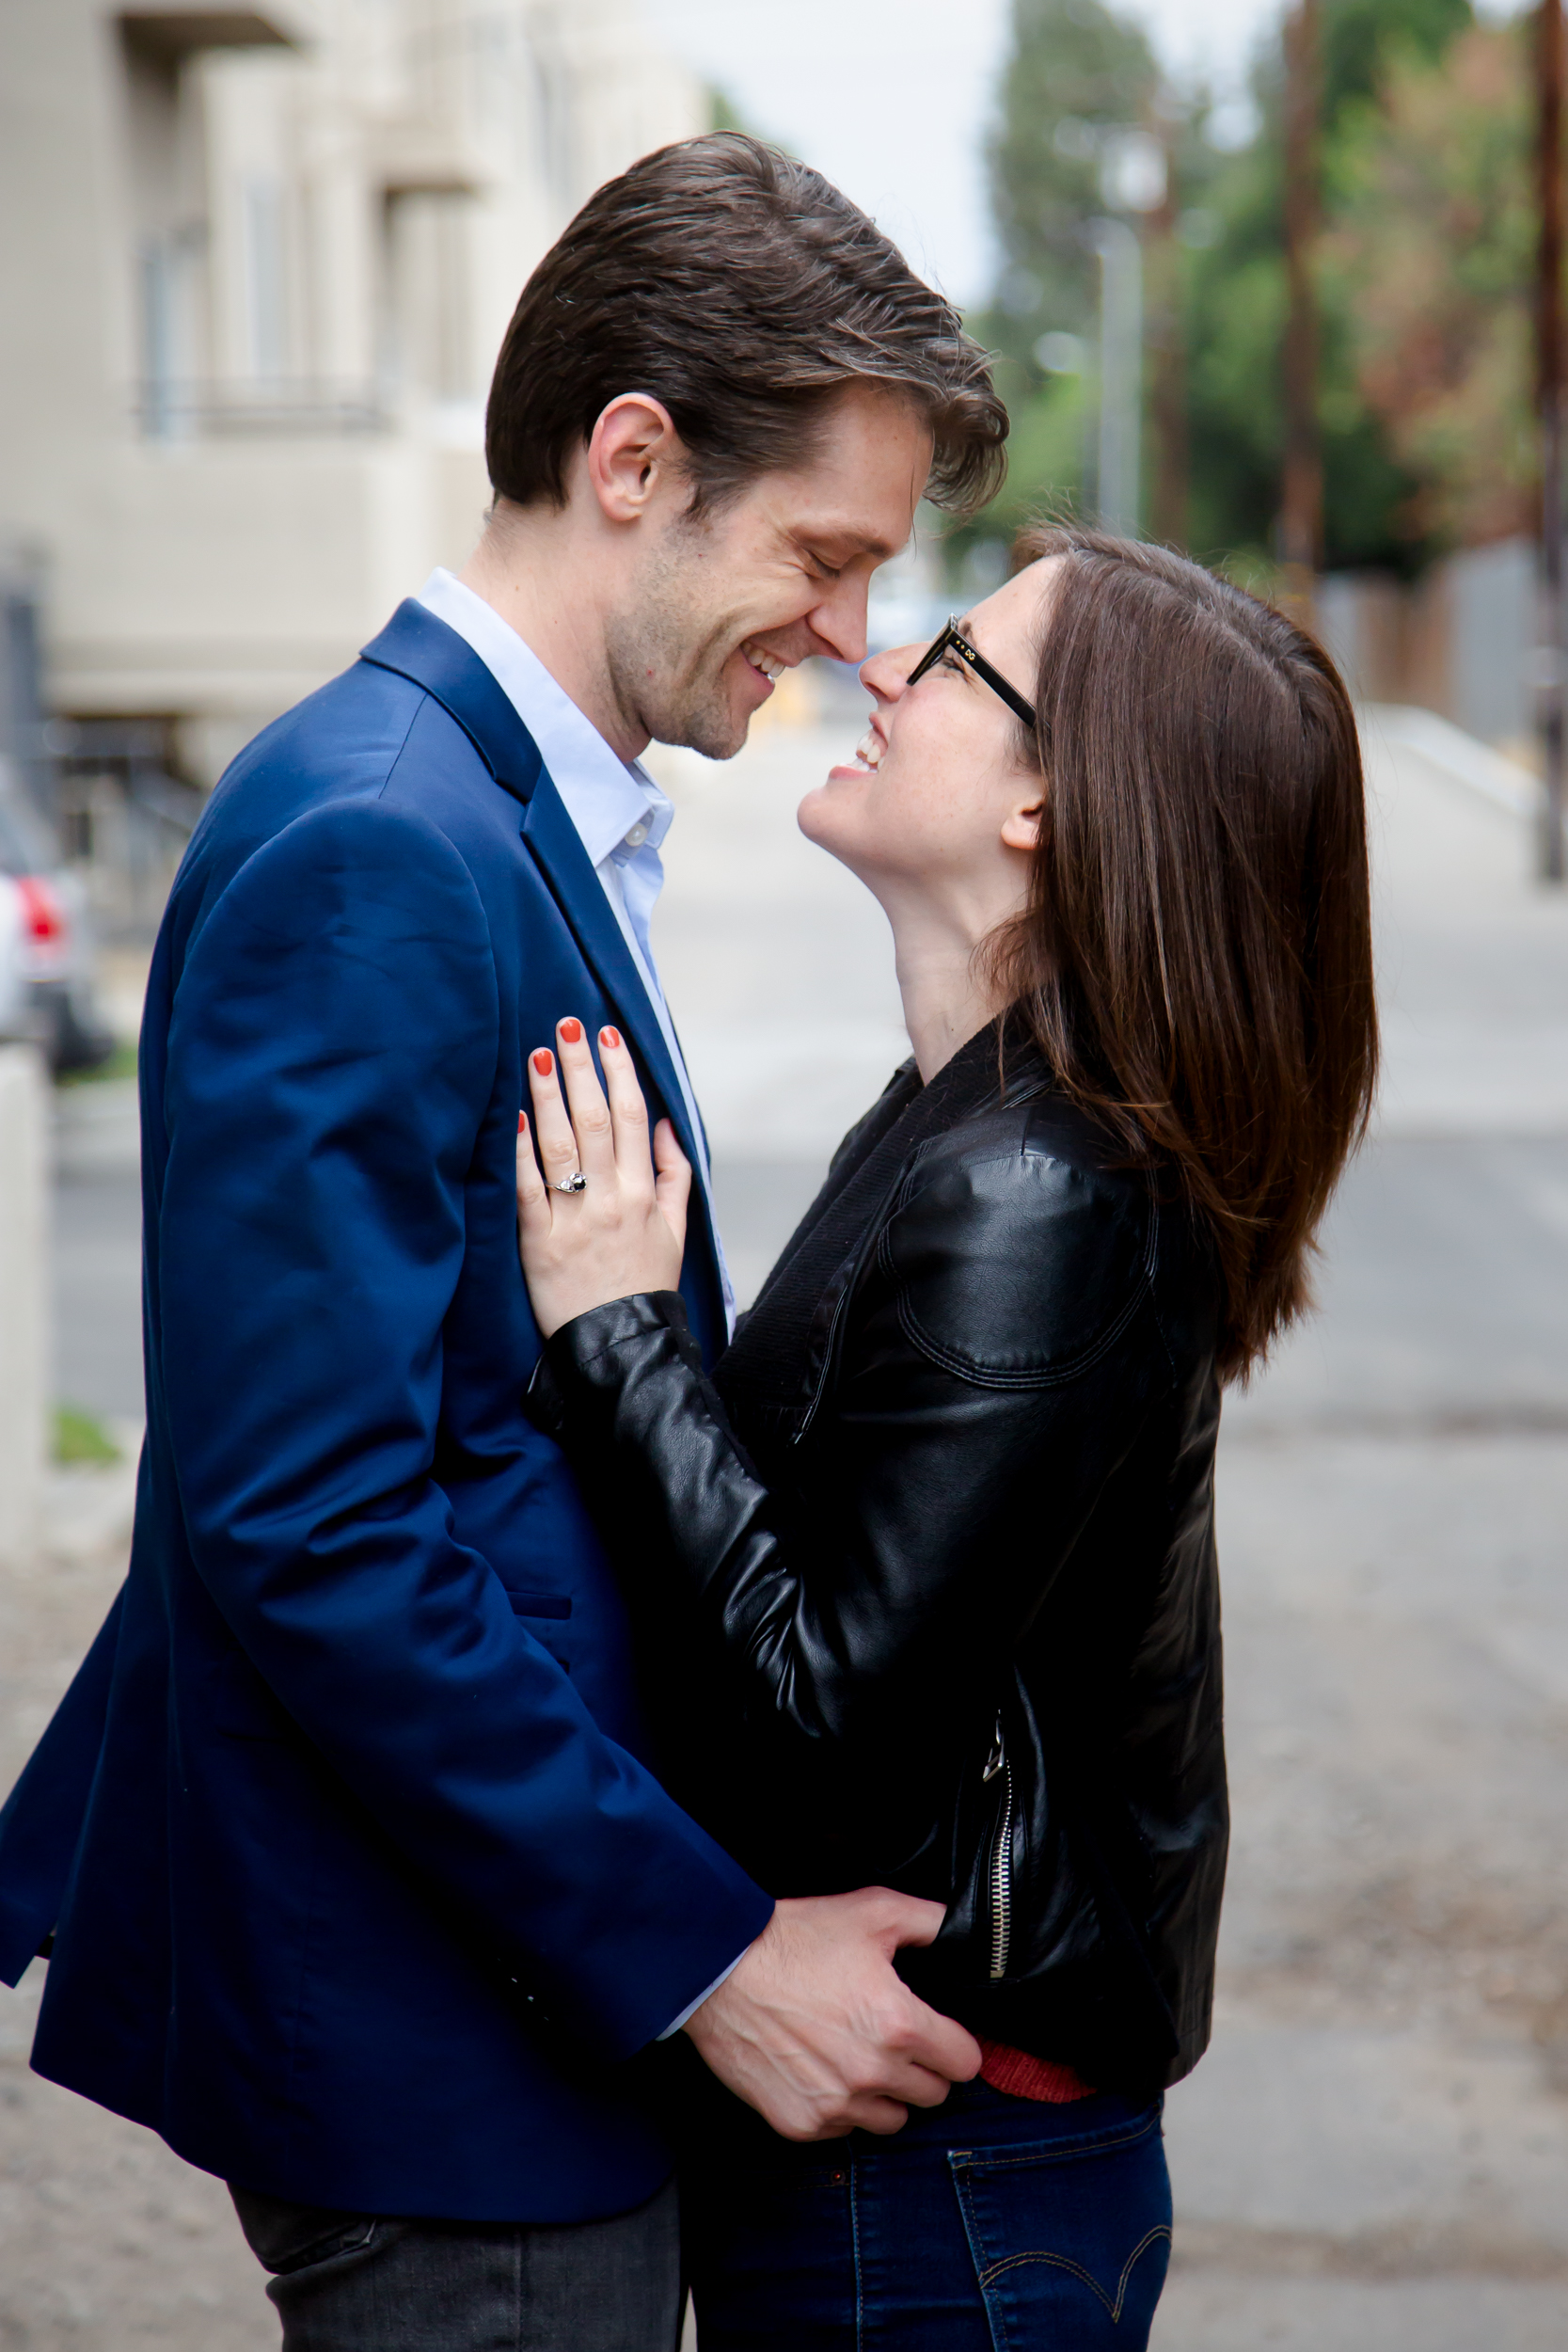 los_angeles_engagement_wedding_photographer_chicago_photographer-14.jpg